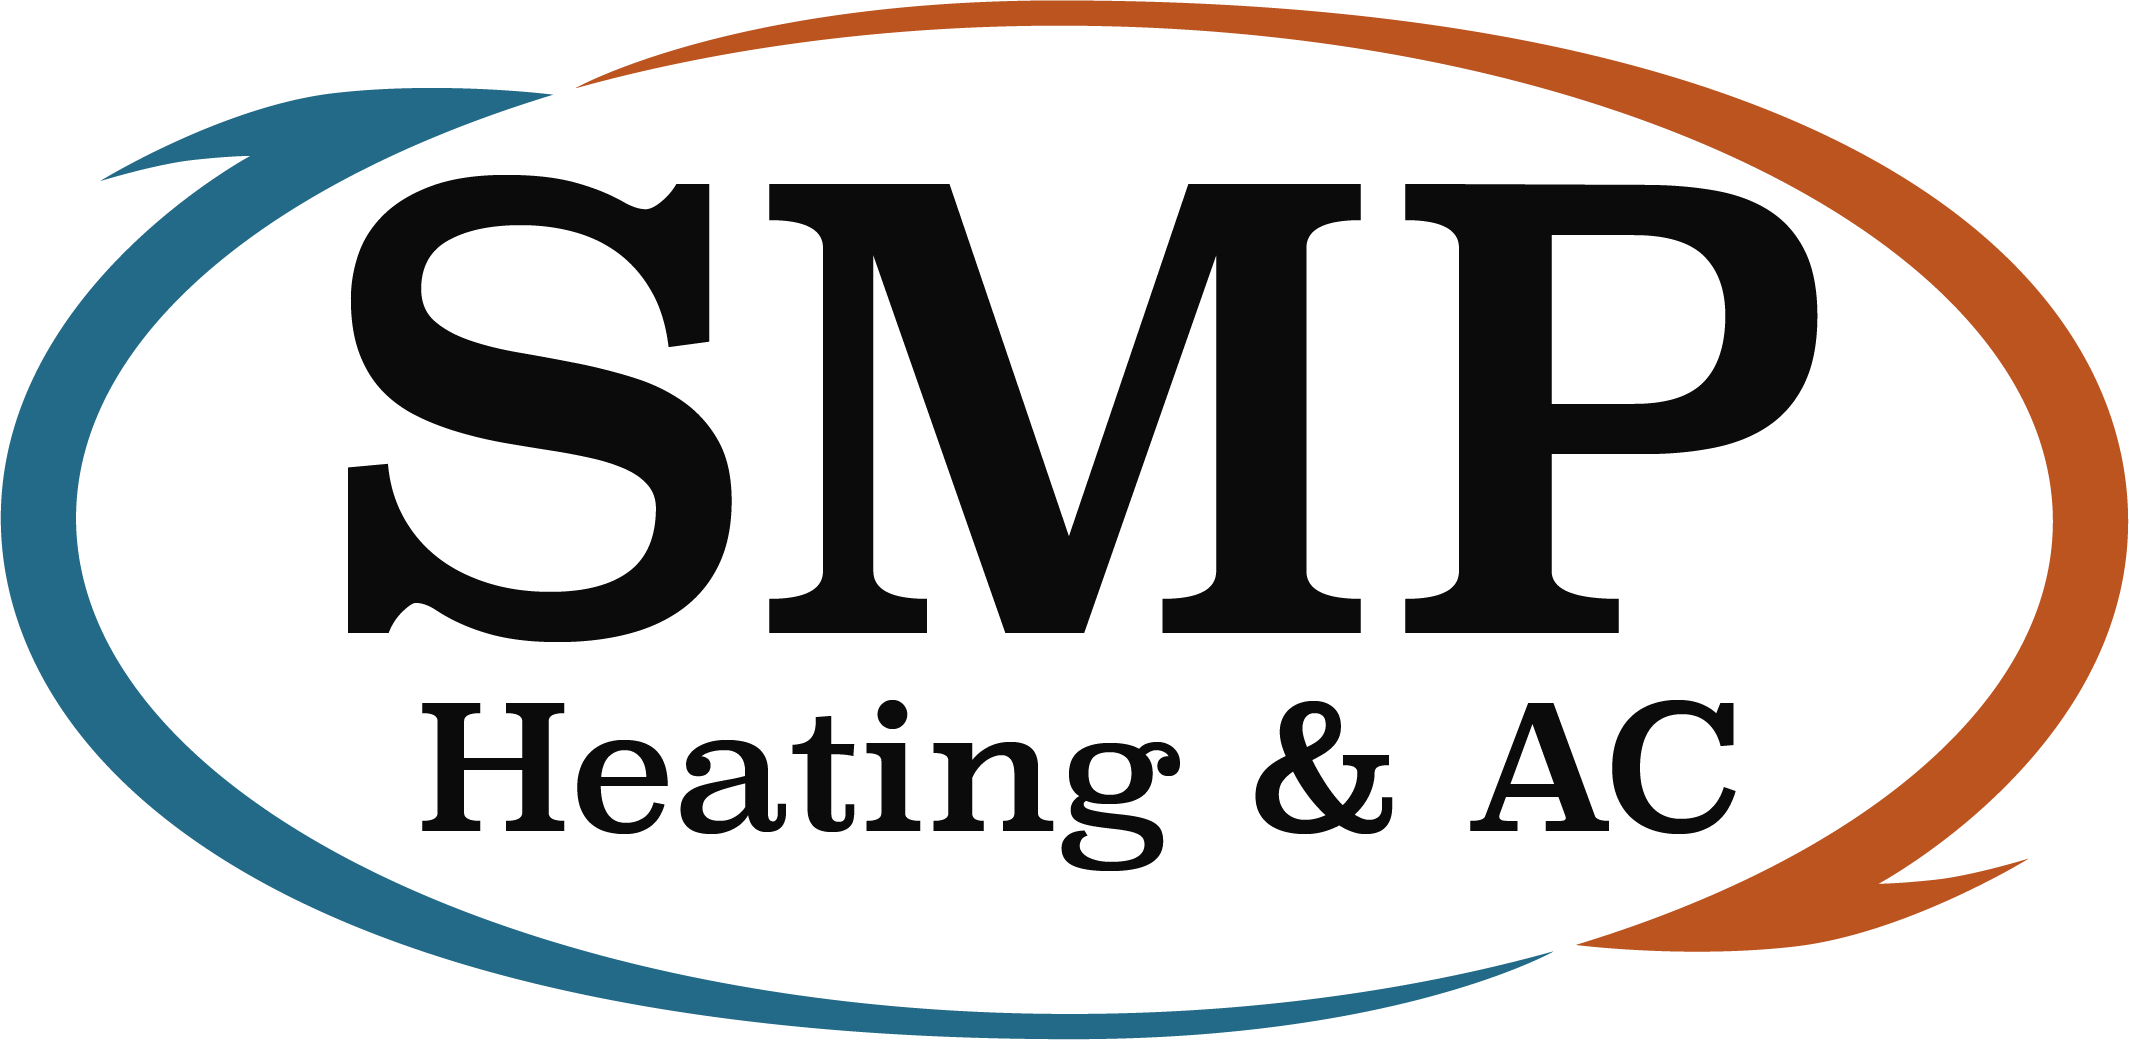 SMP Heating & AC! Your go to for AC and Water Heater repair in Zimmerman MN!